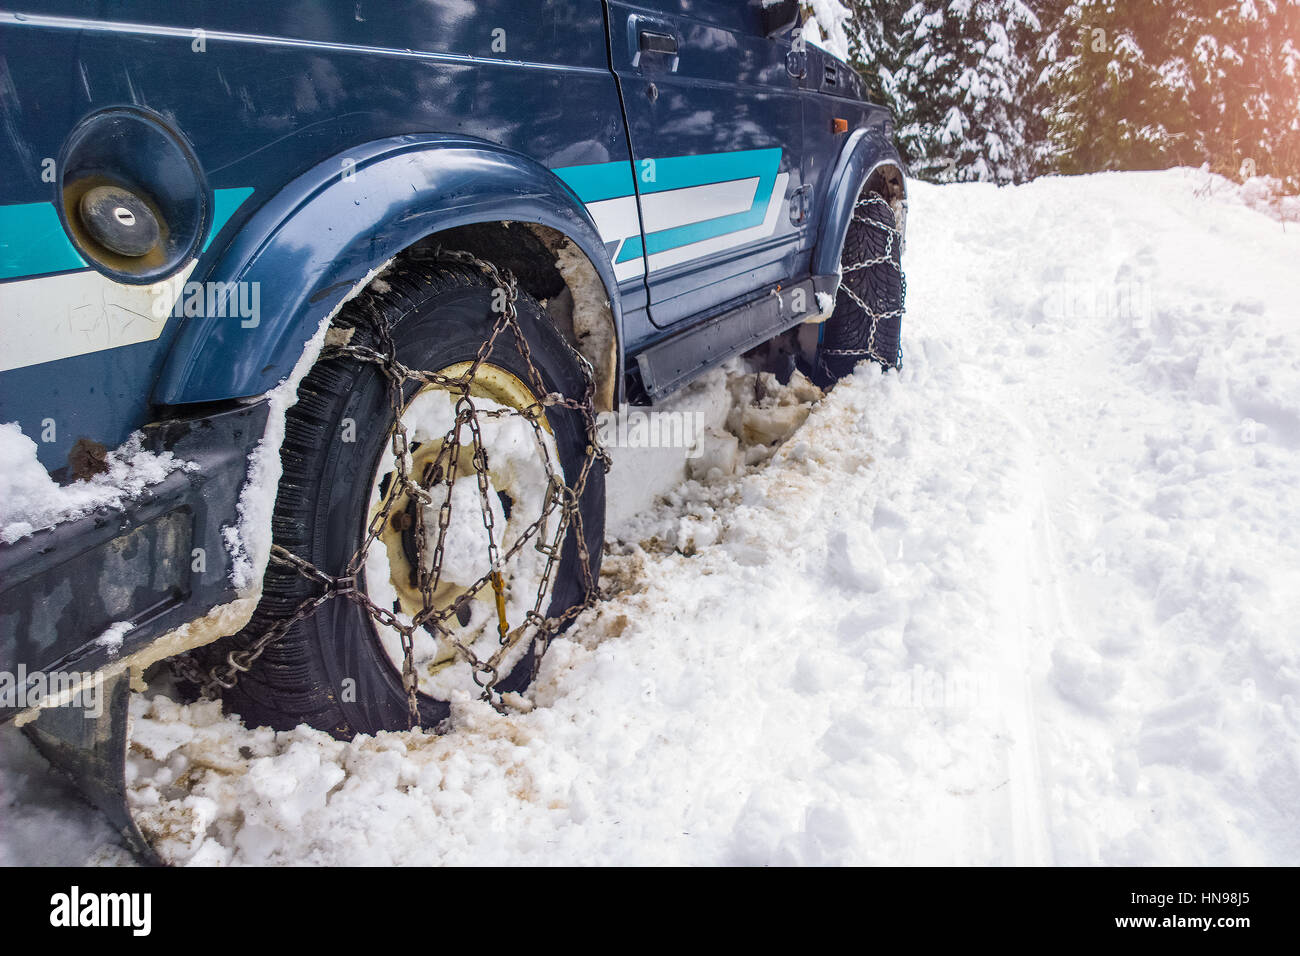 Cars off the road with chains in difficulty in the deep snow - Stock Image